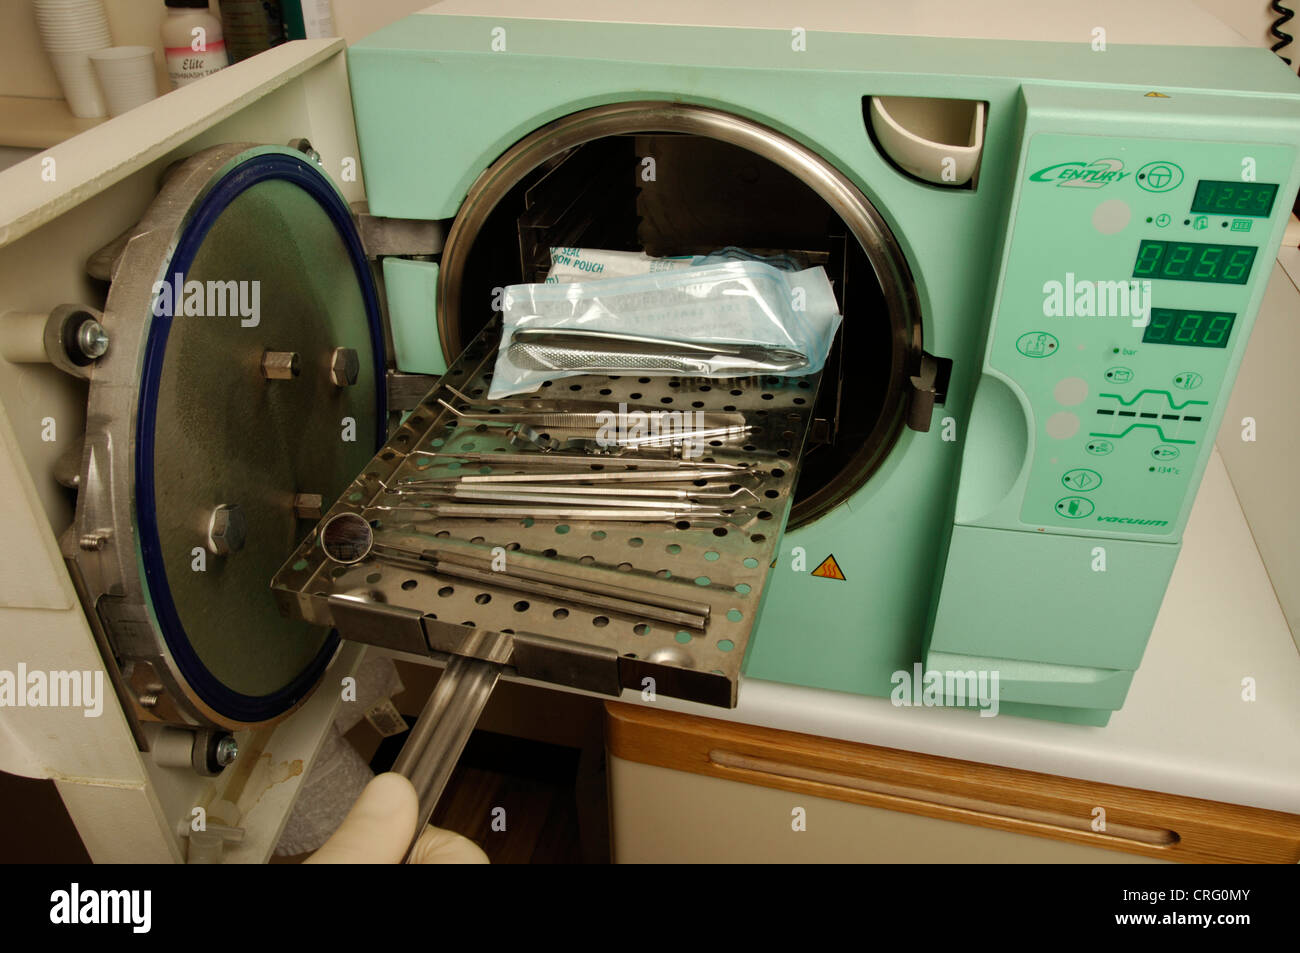 A gloved hand inserts used dental tools into an autoclave to be sterilized by high pressure steam. - Stock Image